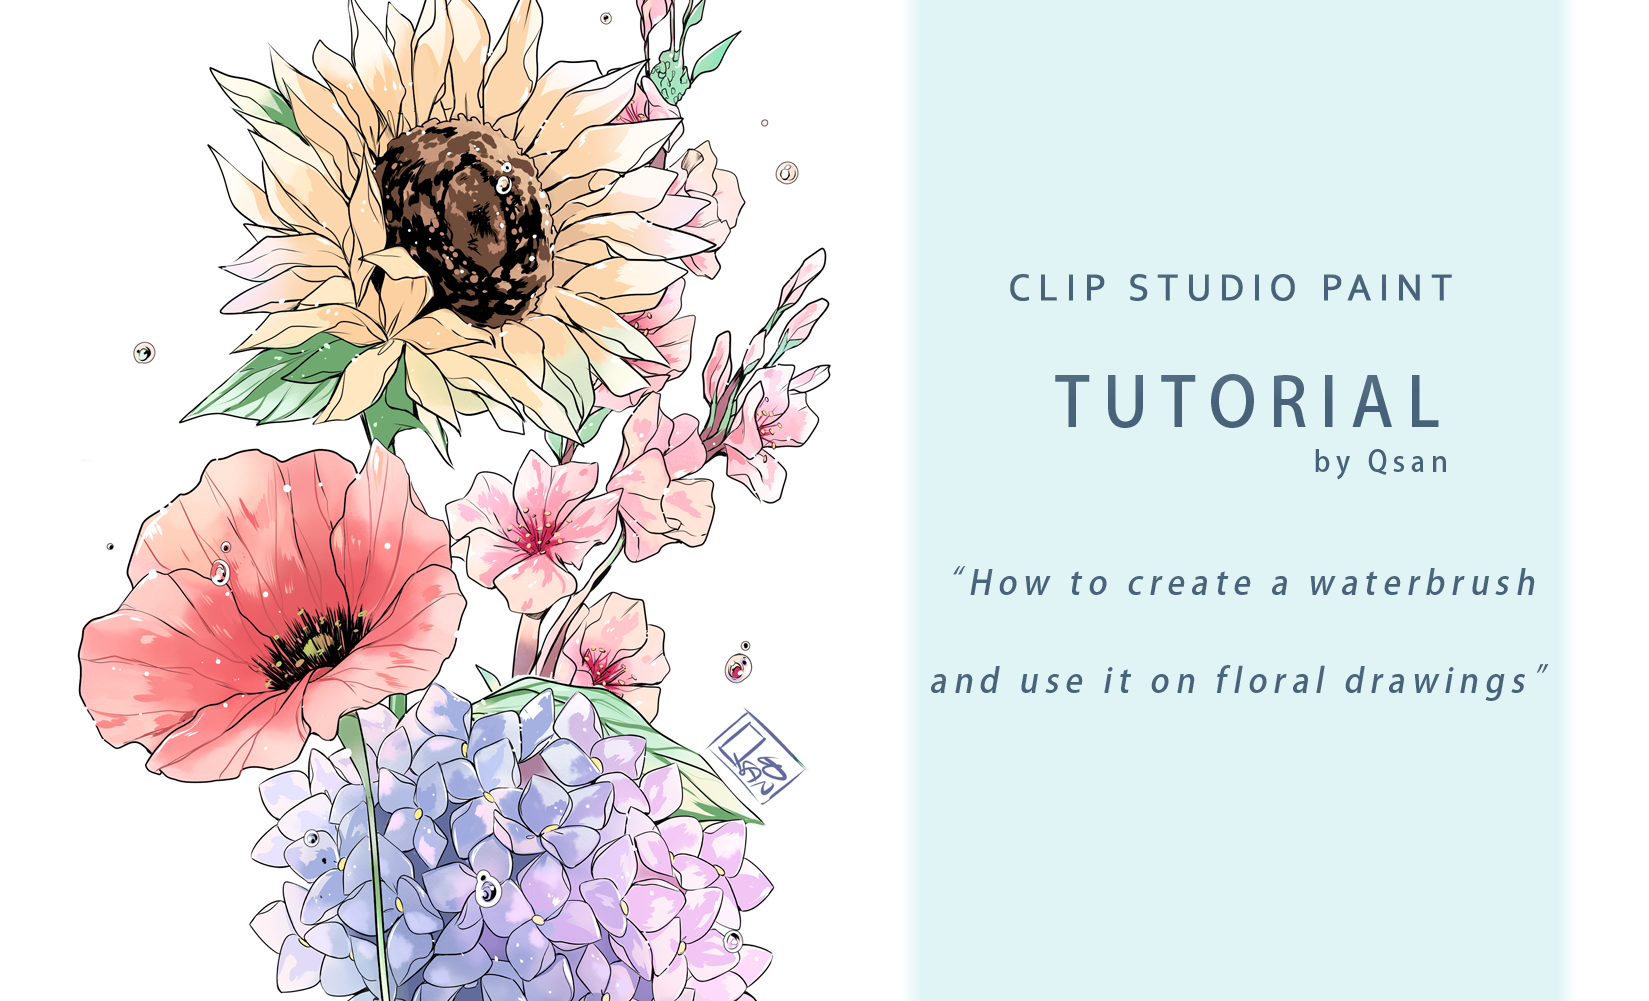 How To Create A Waterbrush And Use It On Floral Drawings